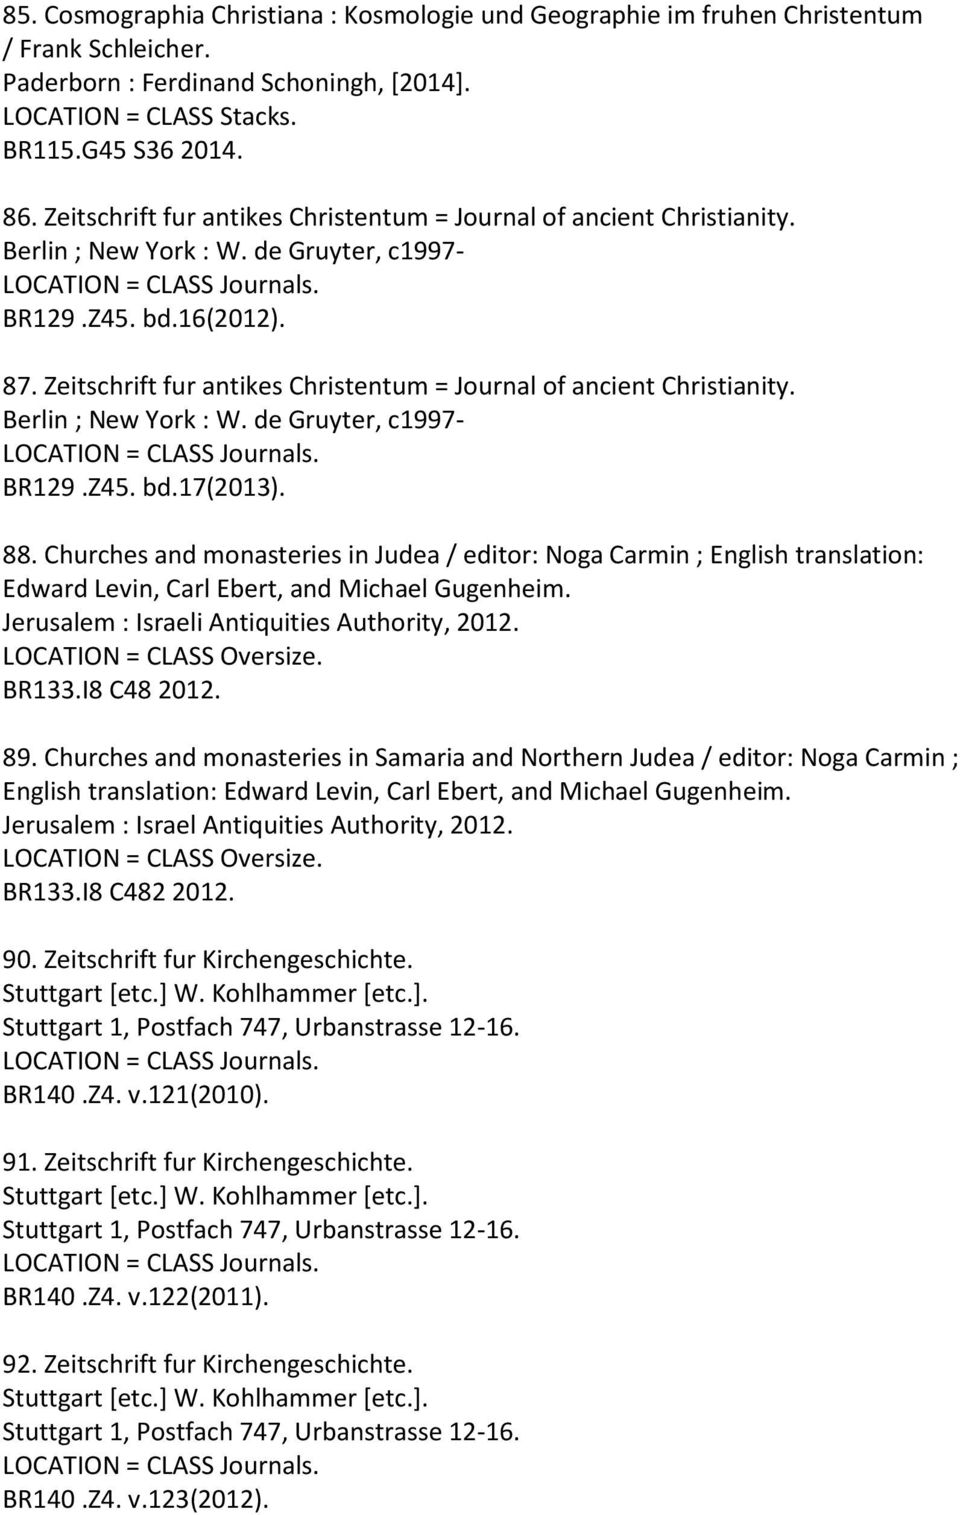 Zeitschrift fur antikes Christentum = Journal of ancient Christianity. Berlin ; New York : W. de Gruyter, c1997- BR129.Z45. bd.17(2013). 88.